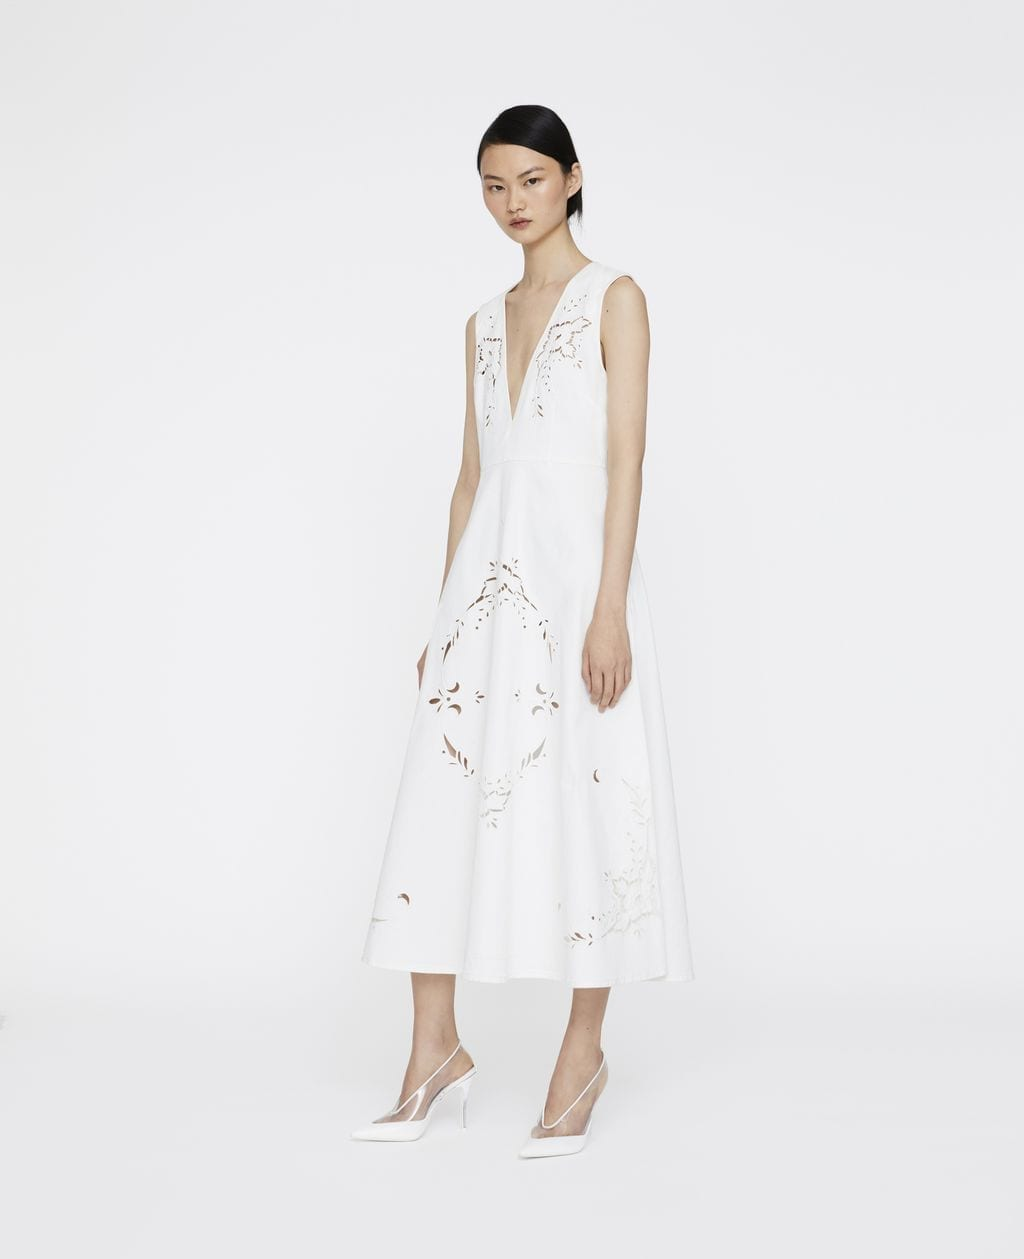 STELLA MCCARTNEY Leyla Embroidered White Dress